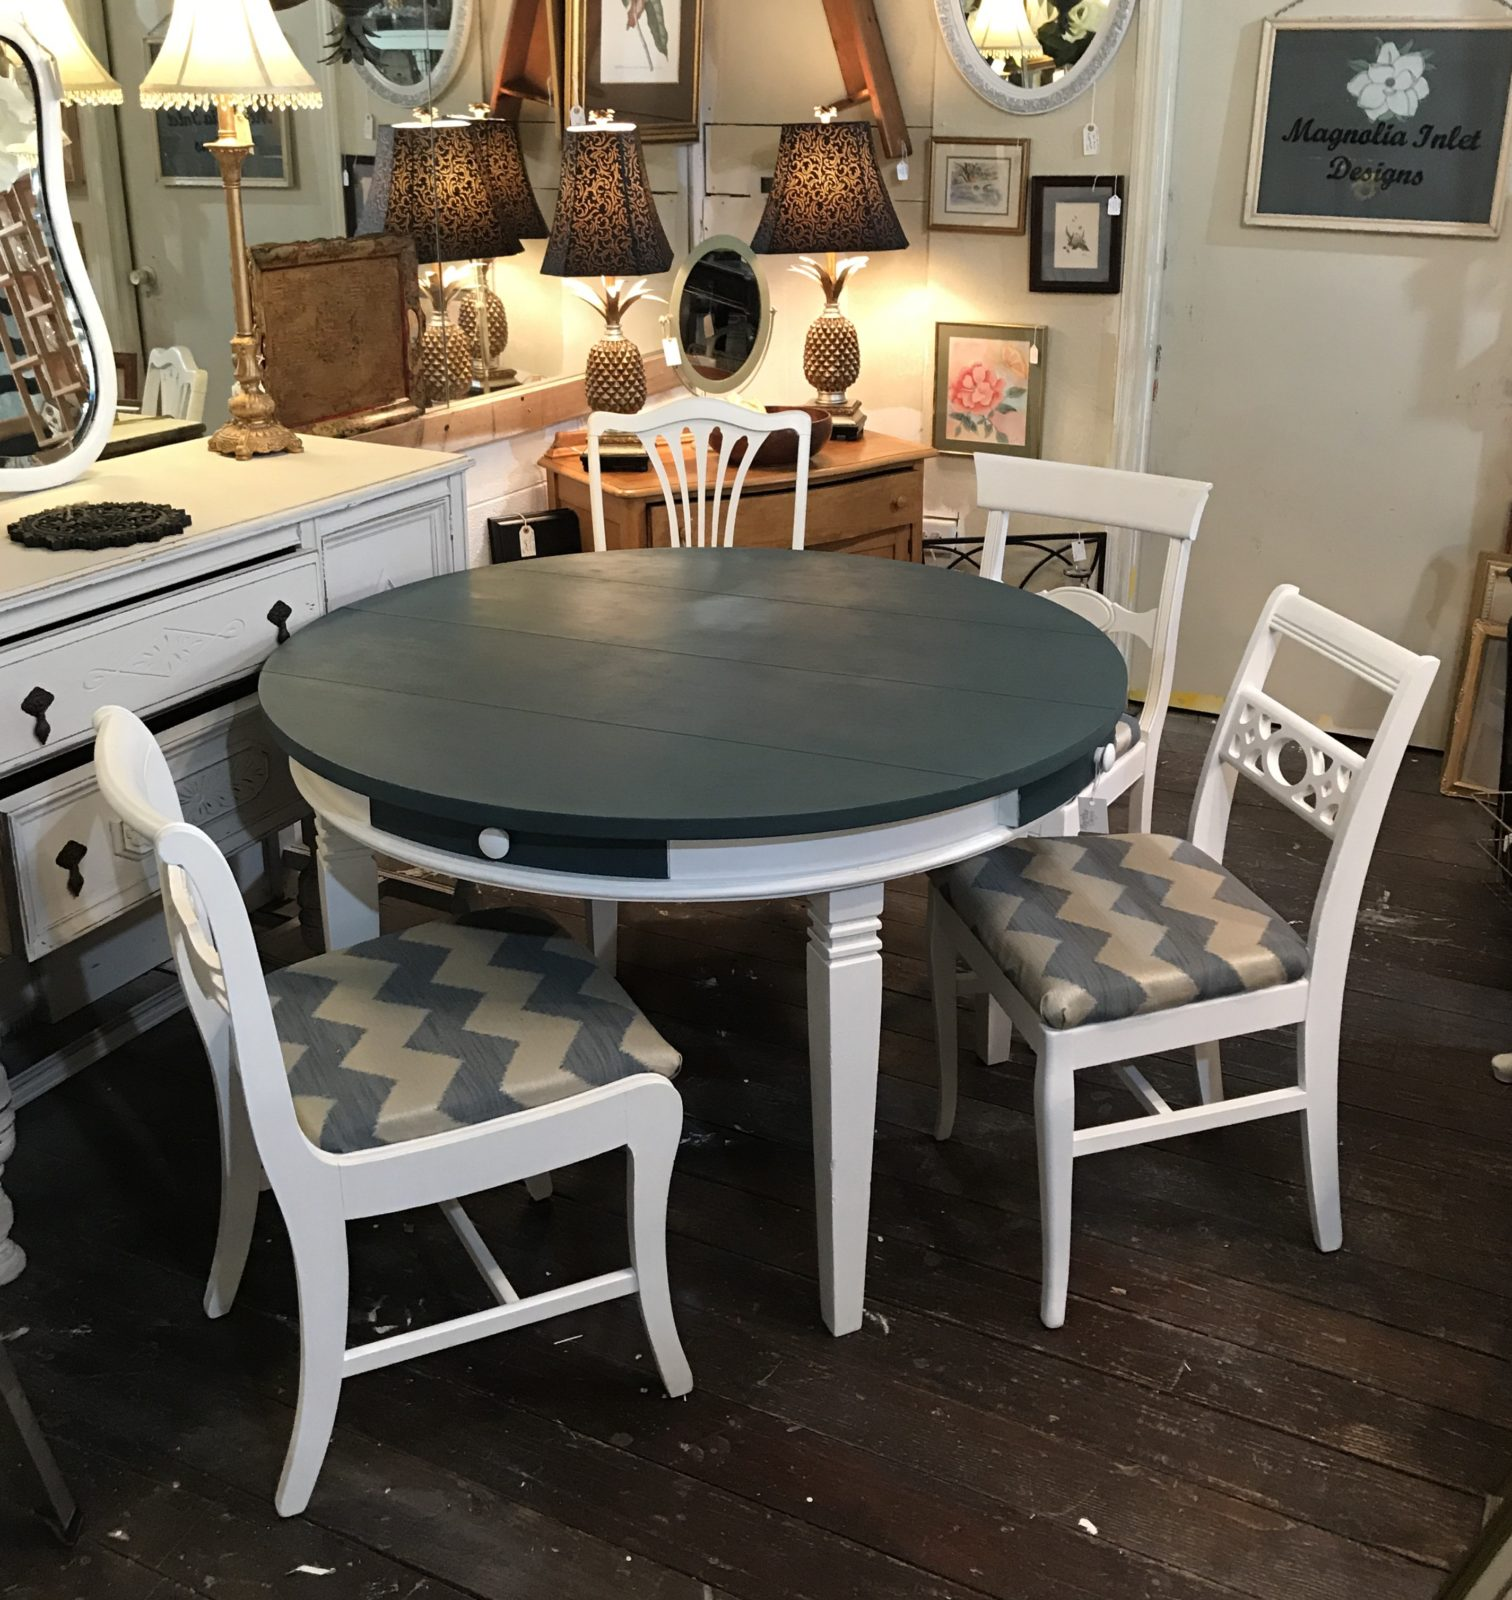 Dining Table And Four Chairs Magnolia Inlet Designs - Round dining table with four chairs